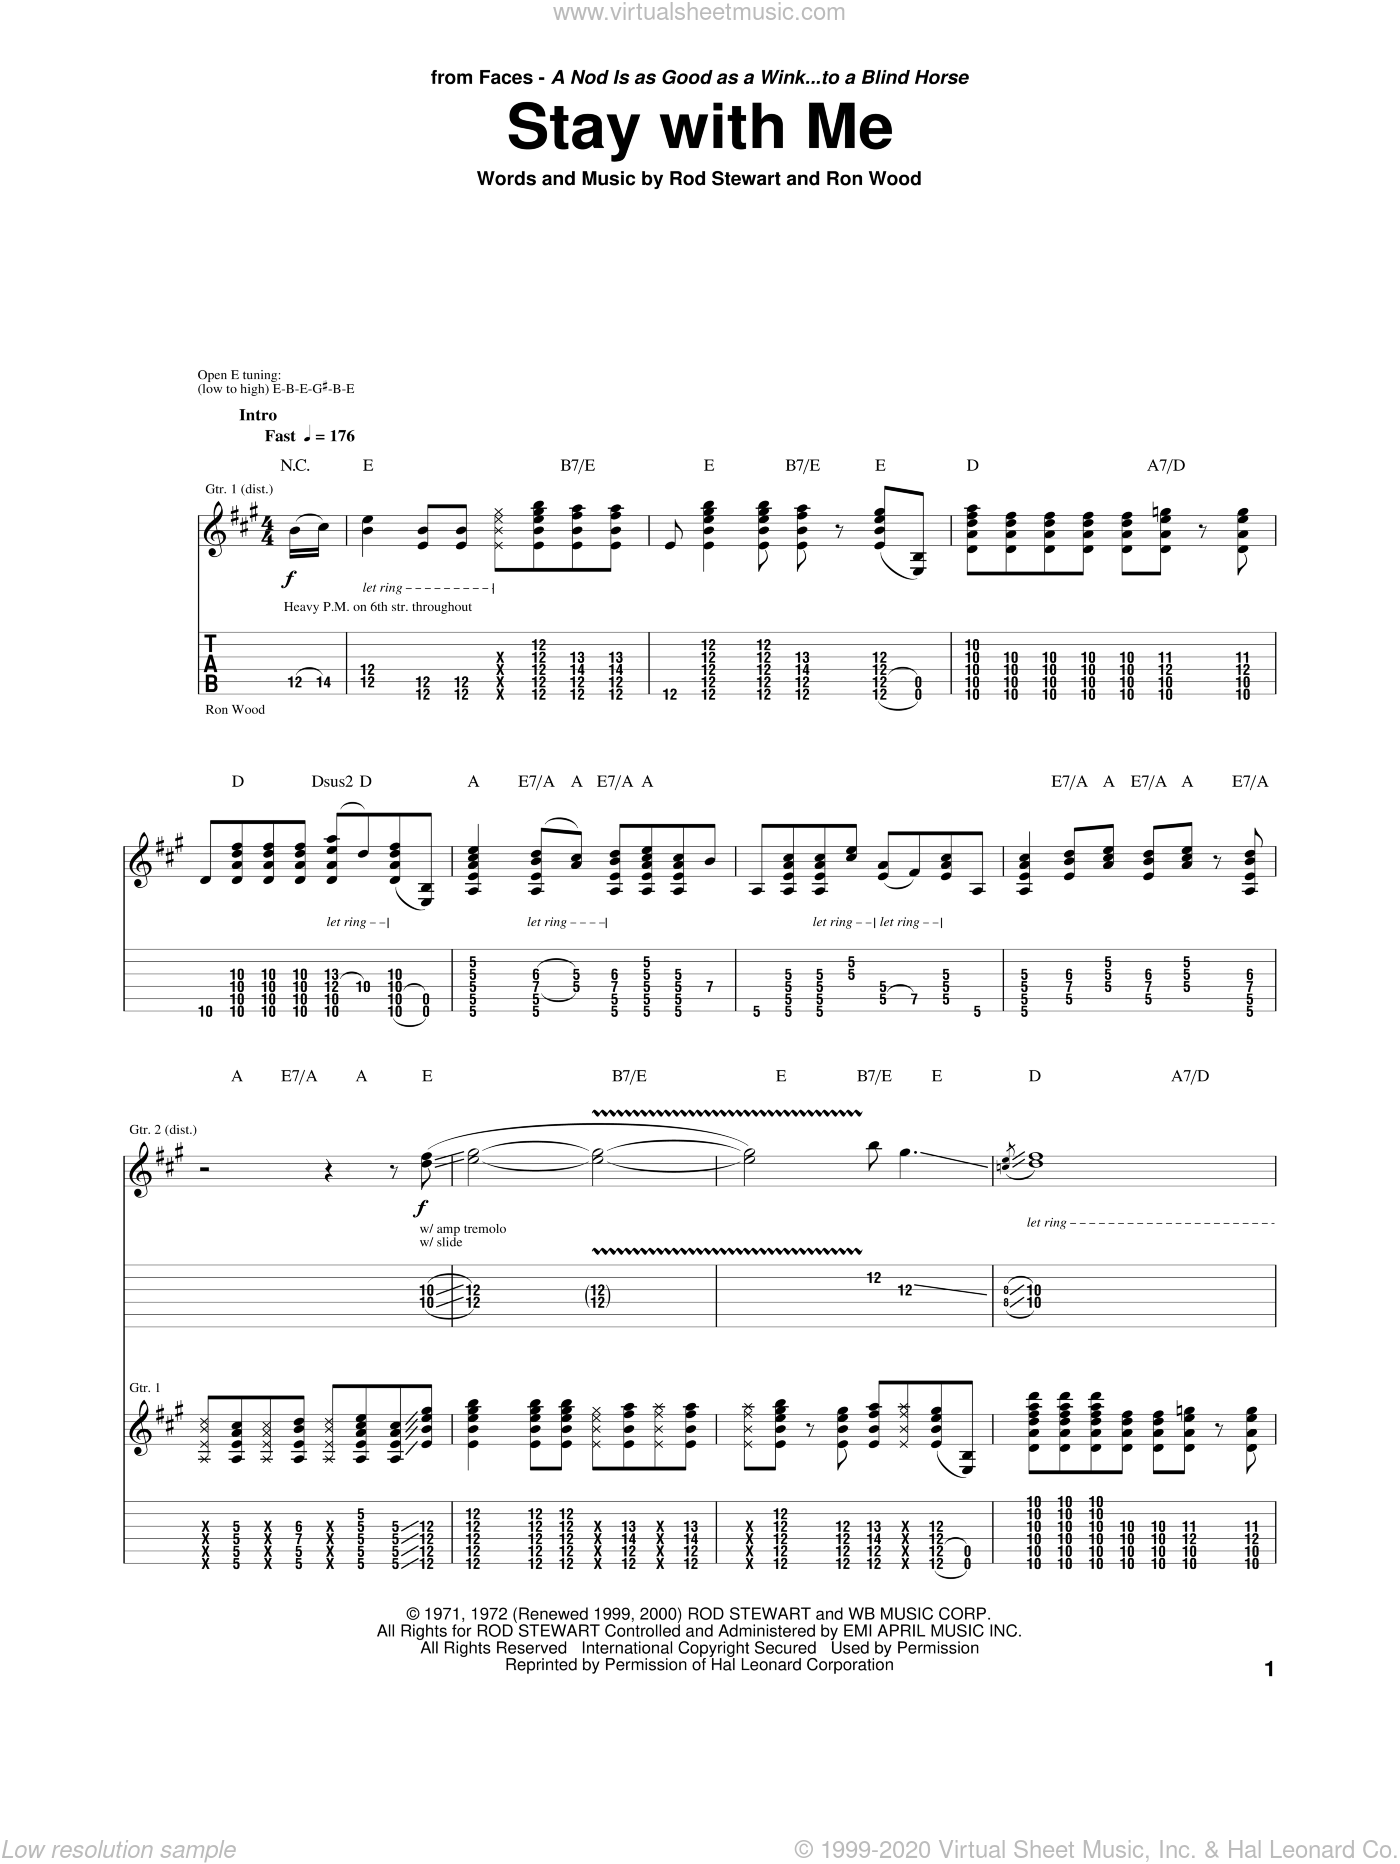 Stay With Me sheet music for guitar (tablature) by Ron Wood and Rod Stewart. Score Image Preview.